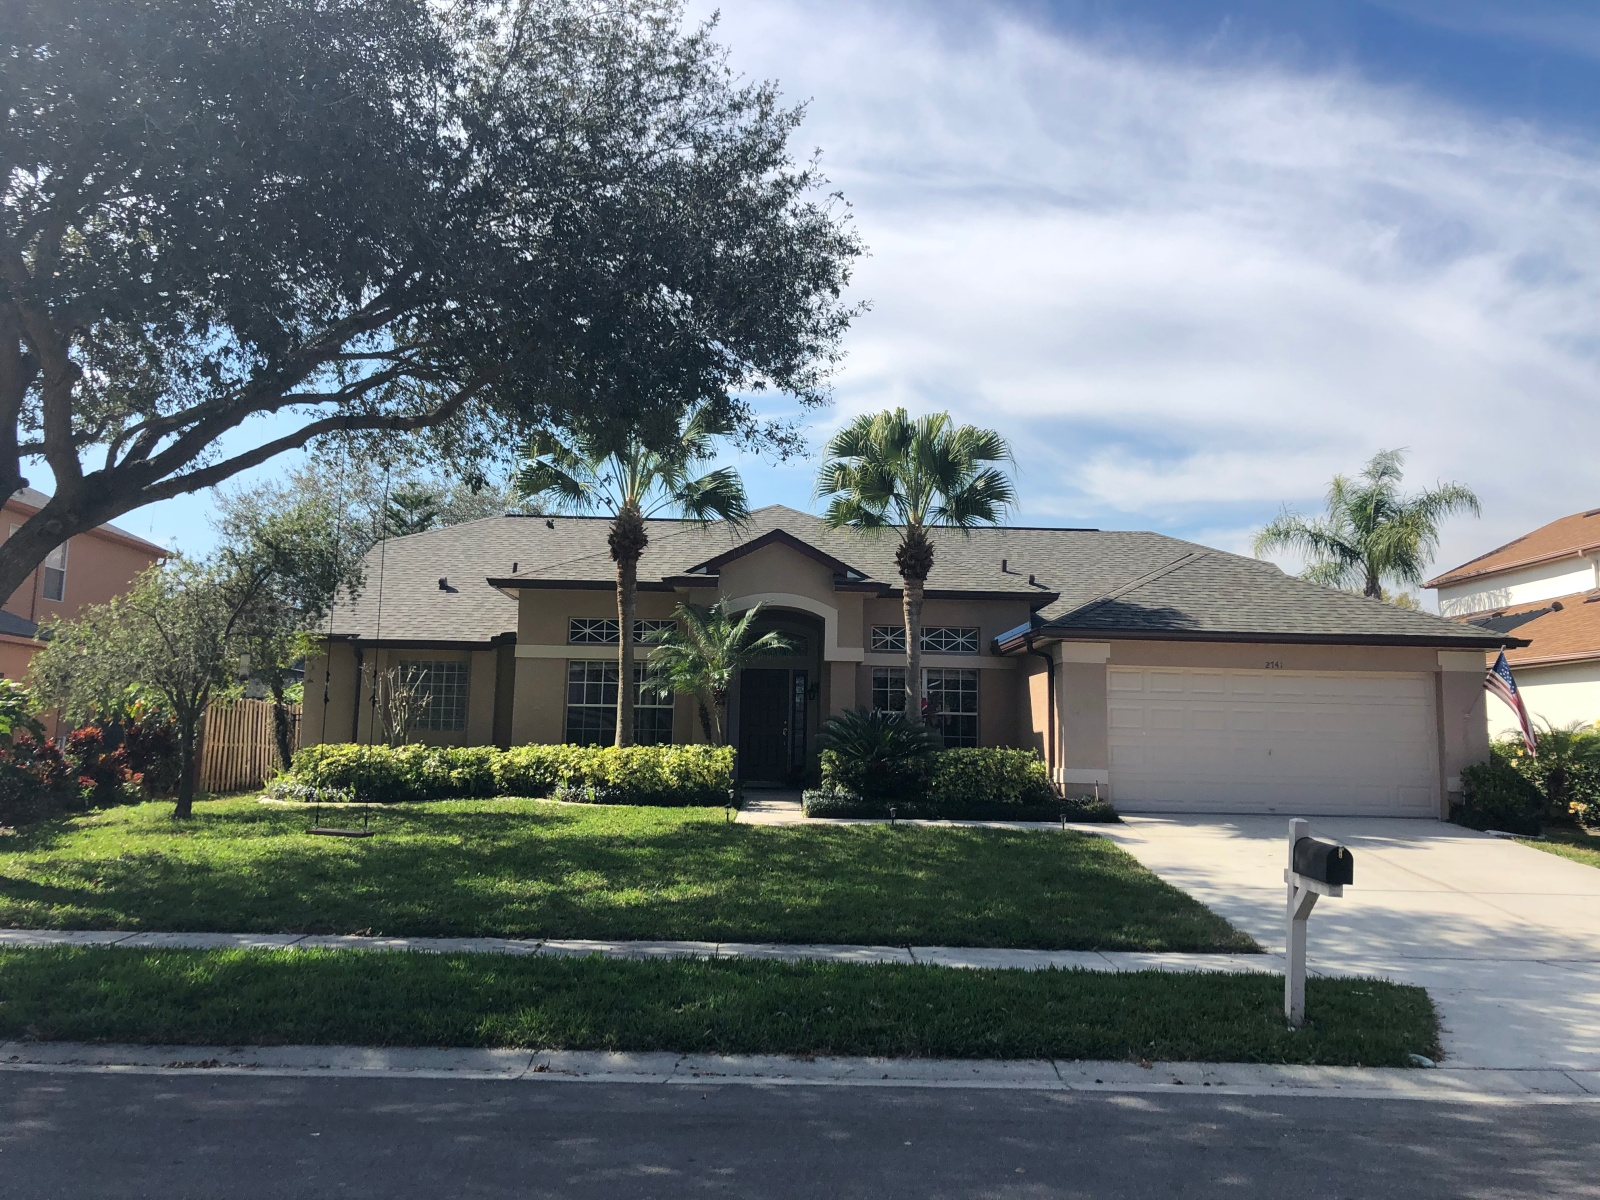 🏠 Coming Soon – 4BD/3BA UPDATED POOL HOME in Oviedo, FL, 32765! 🌟 Highlights: Pool Home • New Roof • New Water Heater • Updated A/C • 3-Way Split Plan • Hardwood Floors throughout • Granite Countertops • Pool Bath • 2-Car Garage • A-Rated Seminole County Schools • Low HOA • plus much more.Don't hesitate - you will be impressed with this move-in ready home zoned for top-rated schools!